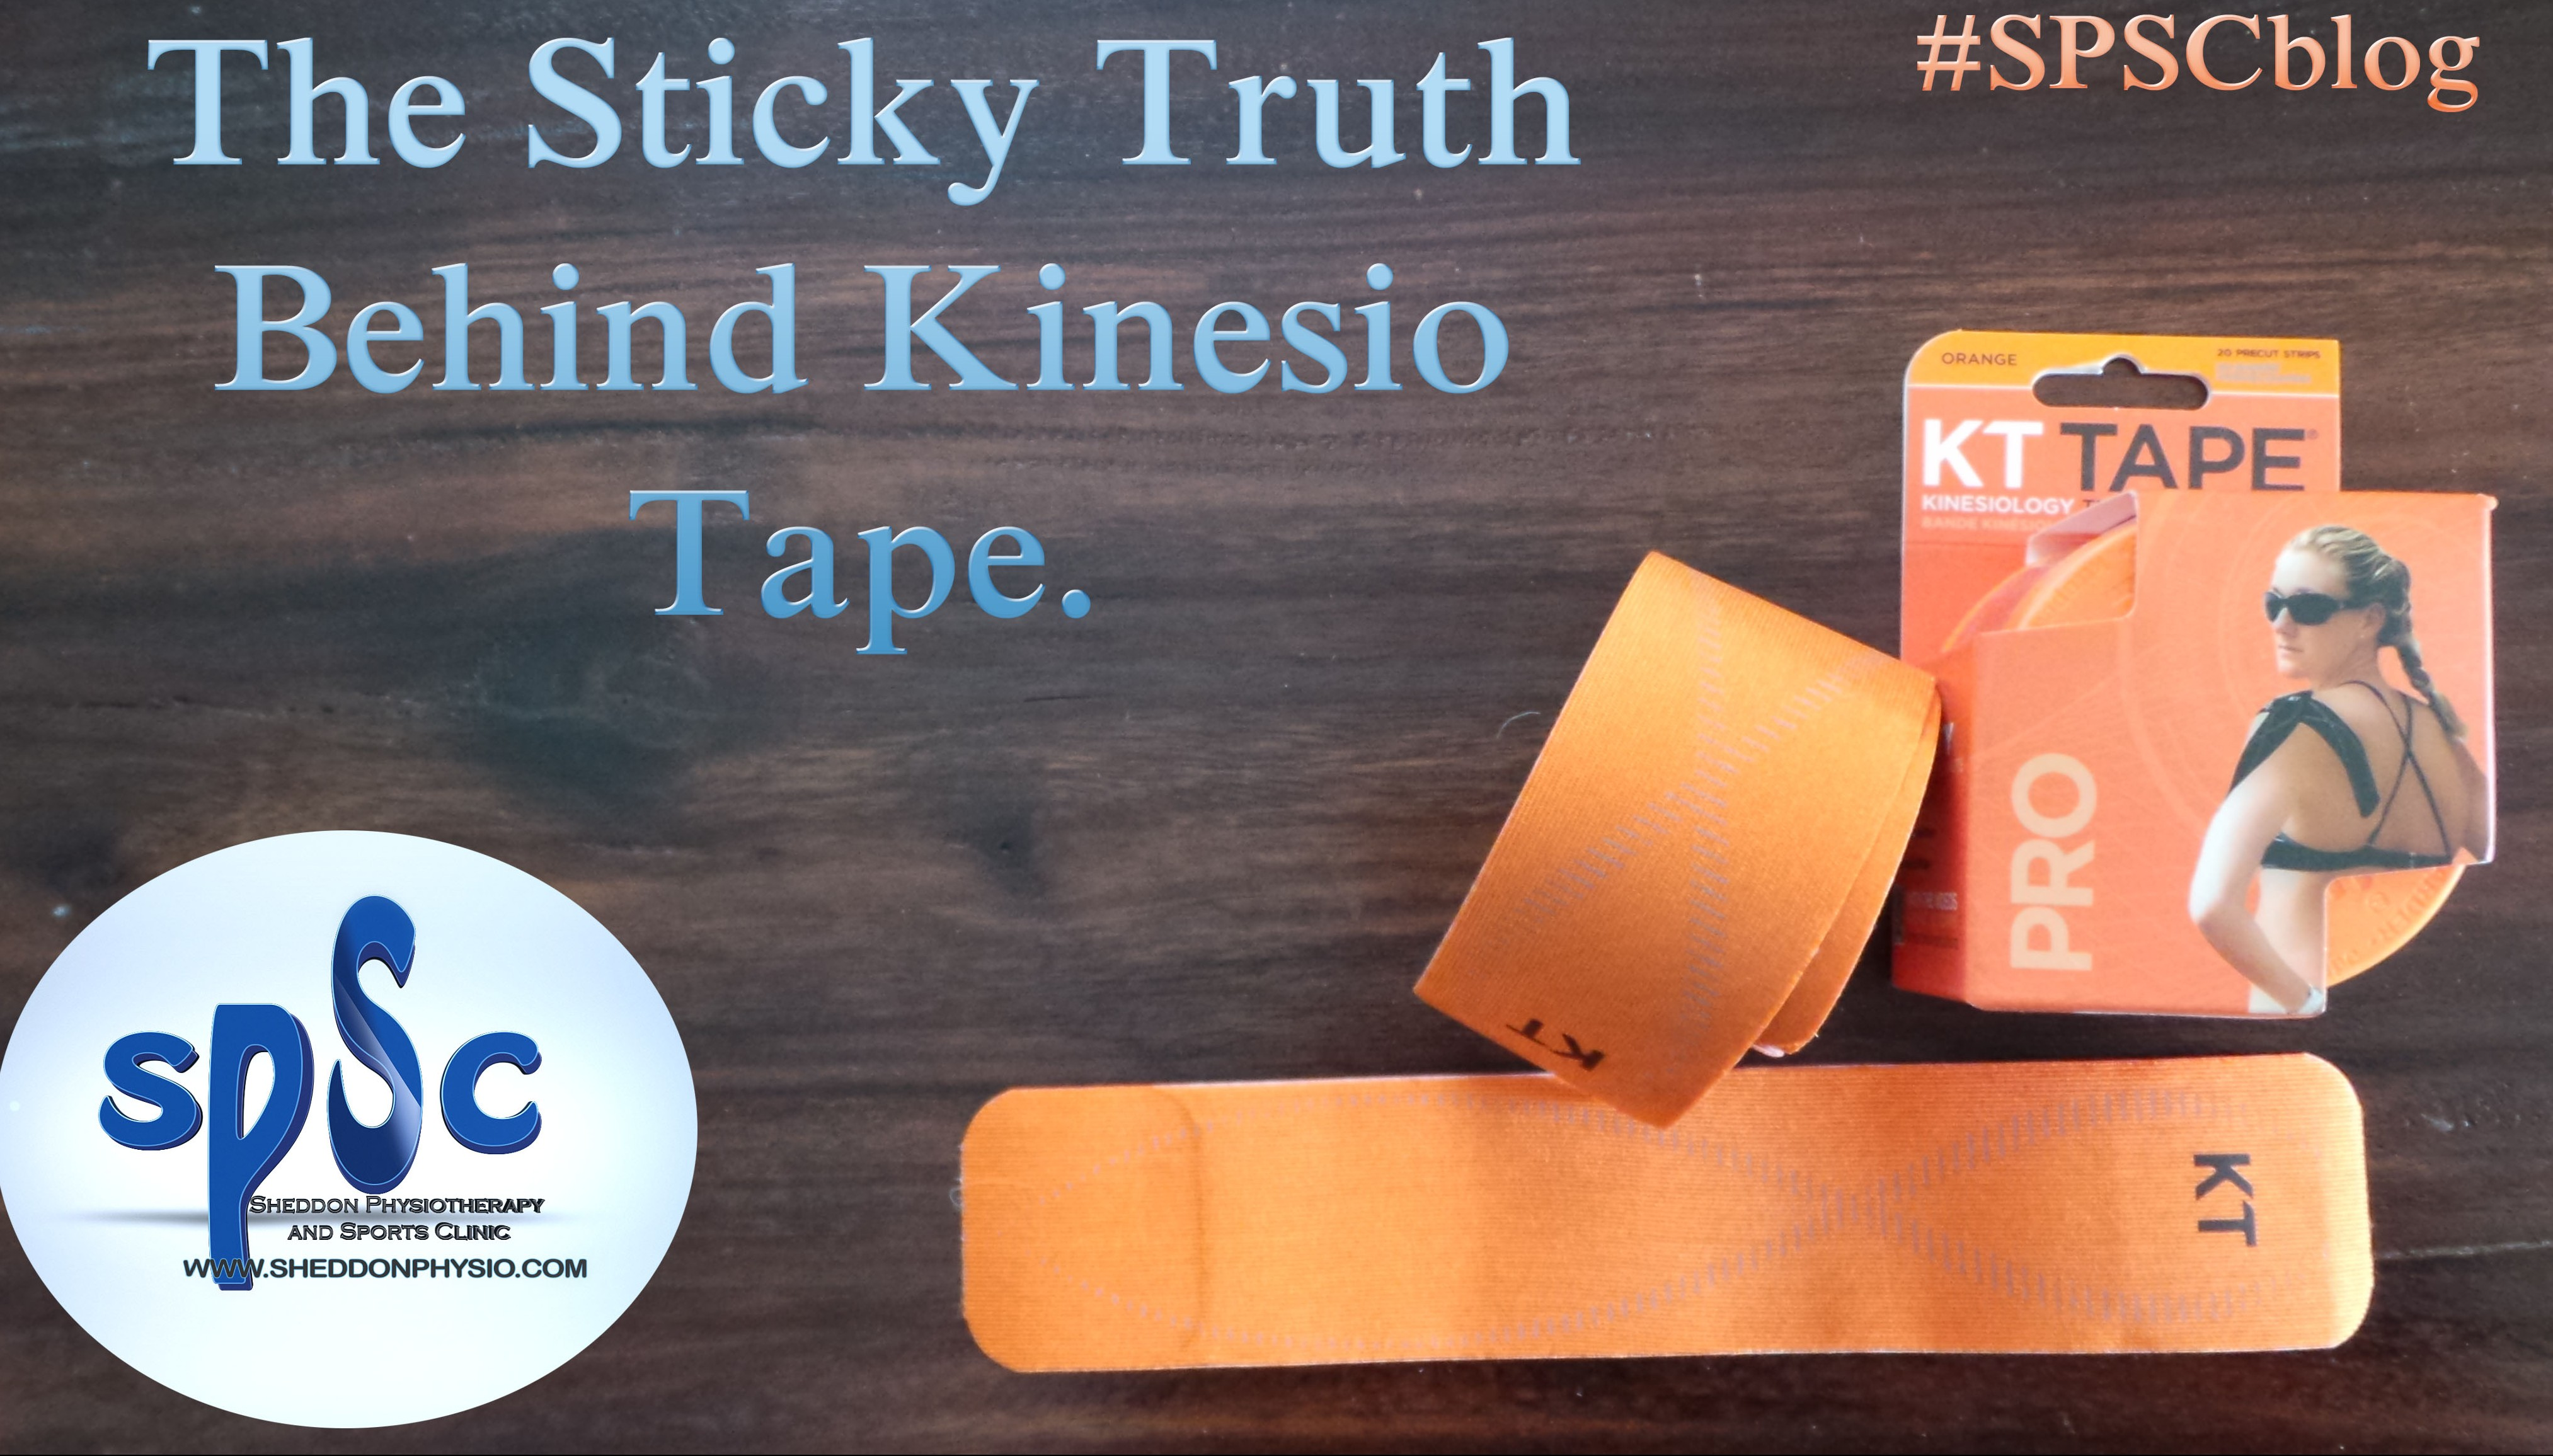 The Sticky Truth Behind Kinesio Tape